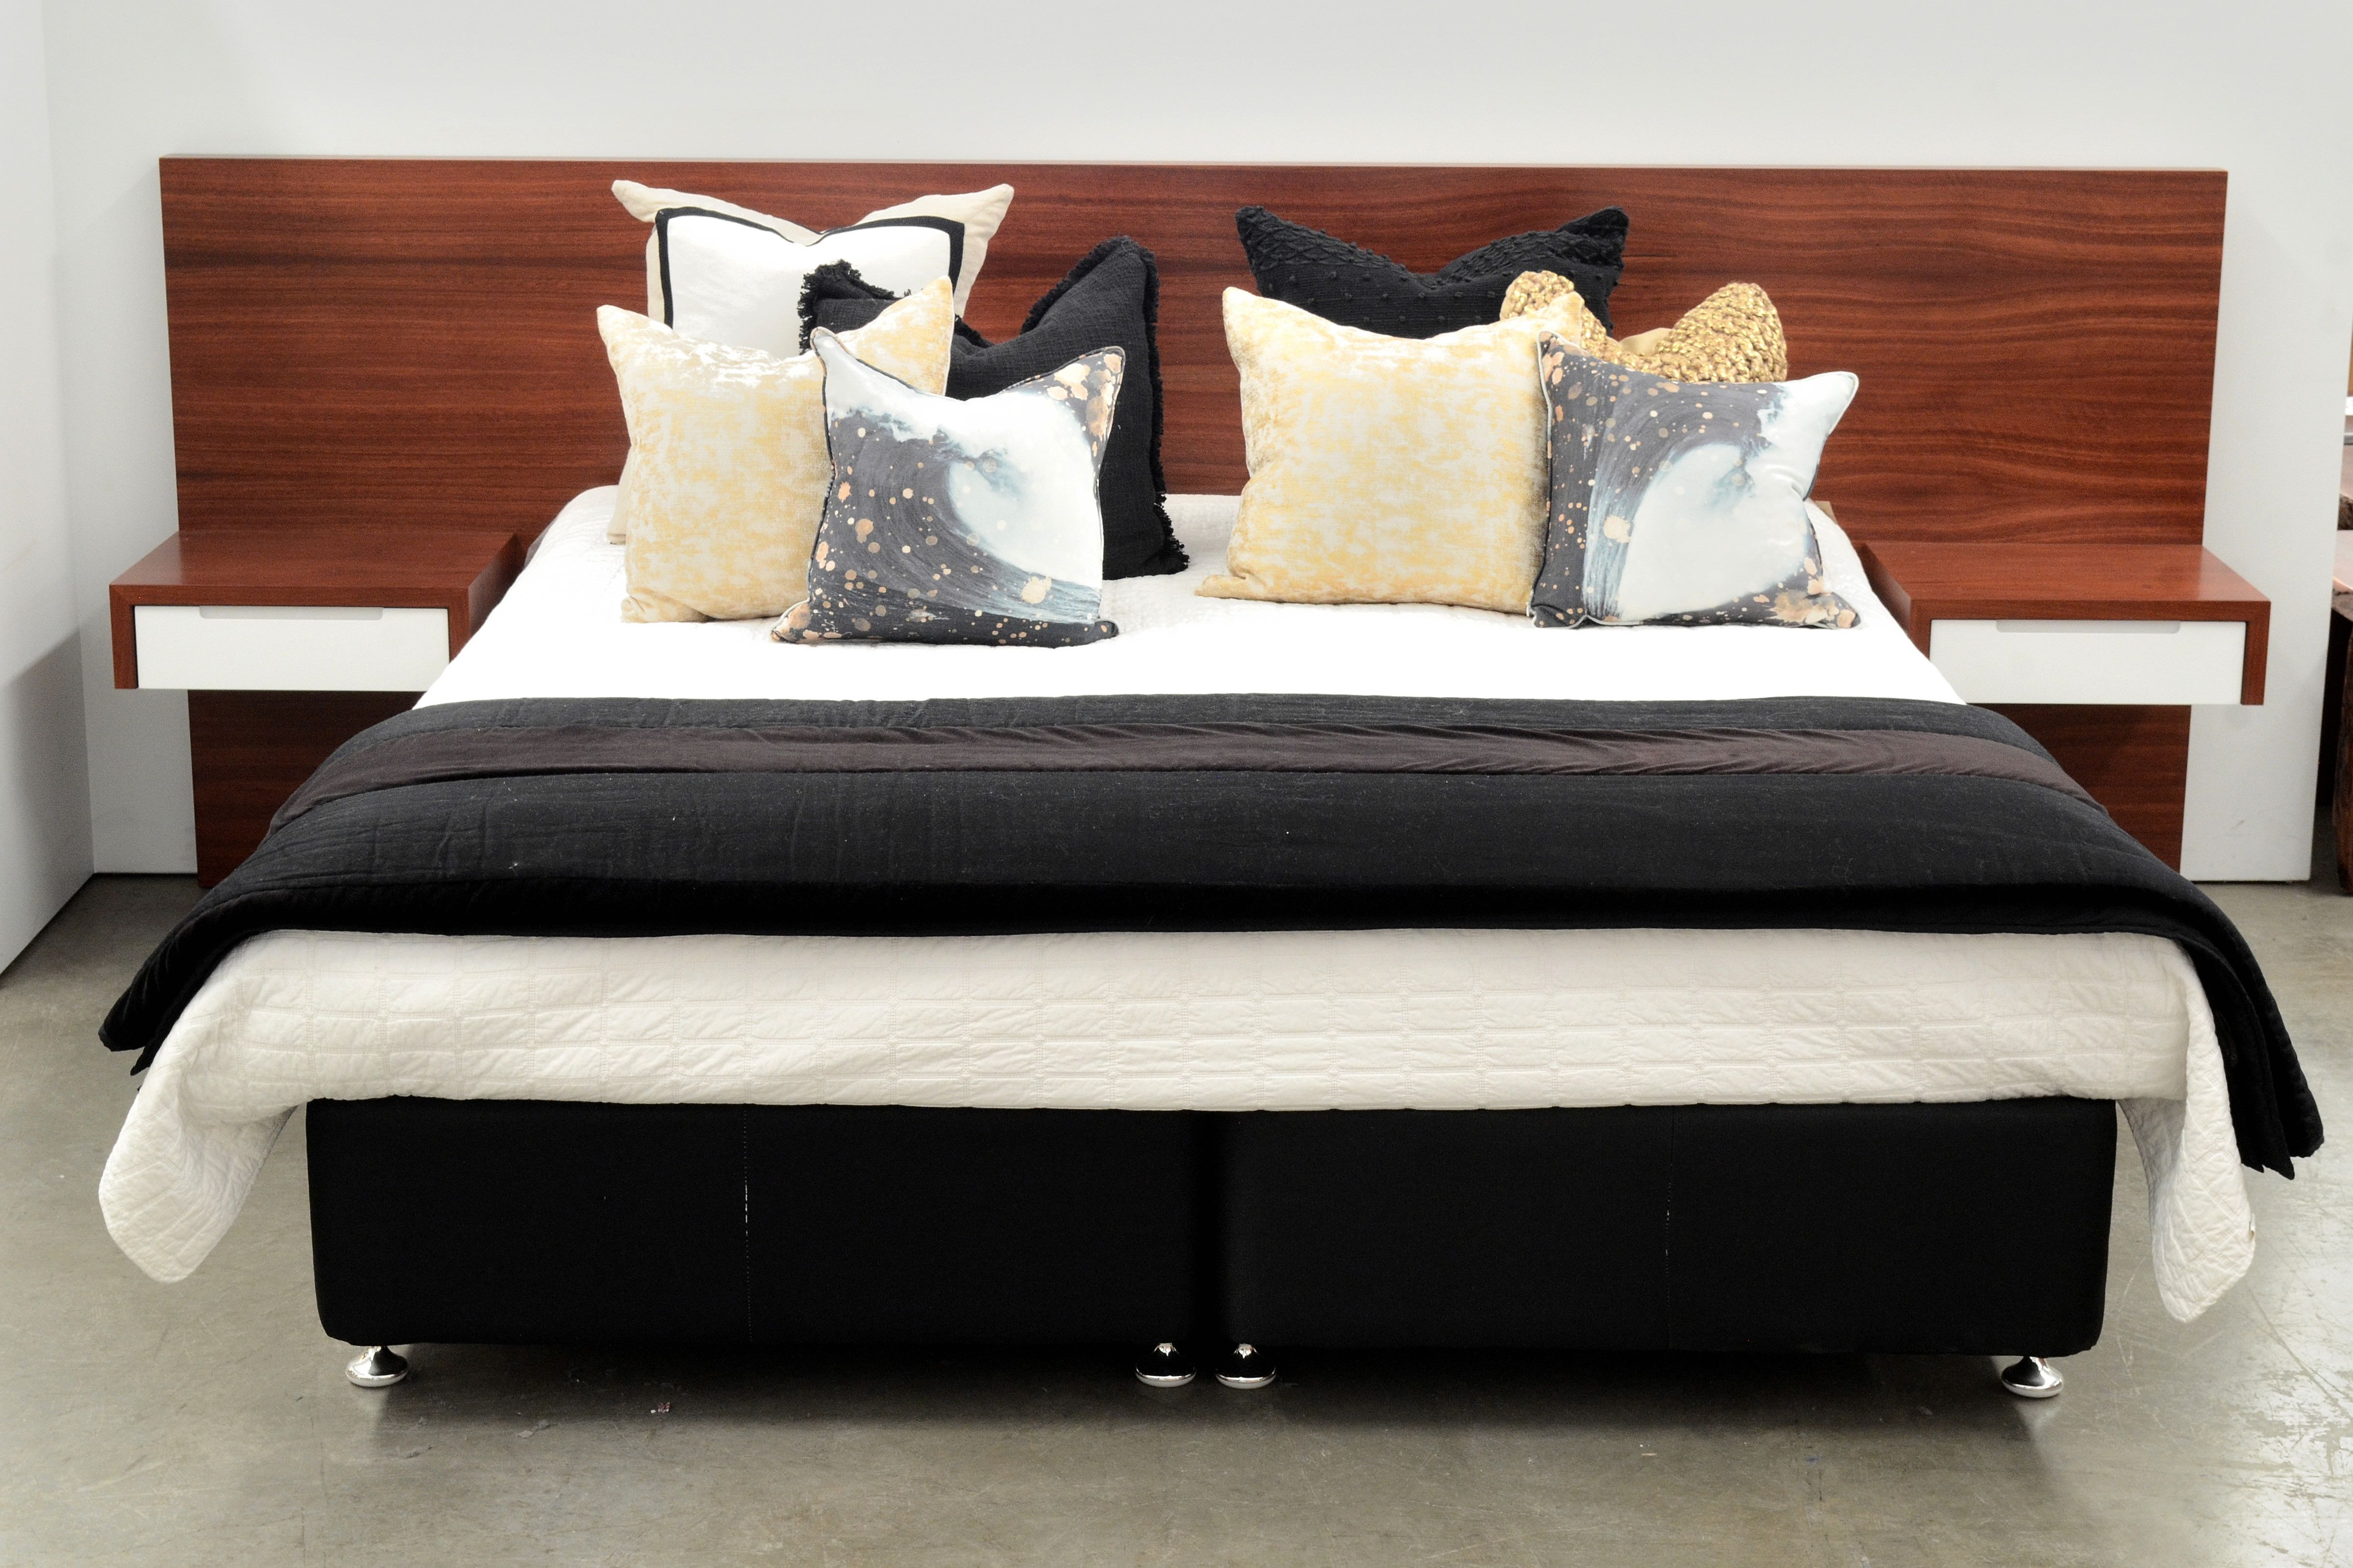 New Jarrah Platform Headboard These Wall Mounted Headboards With Built In Drawer Units Are Perfect For People Wood Headboard Furniture Pallet Projects Bedroom